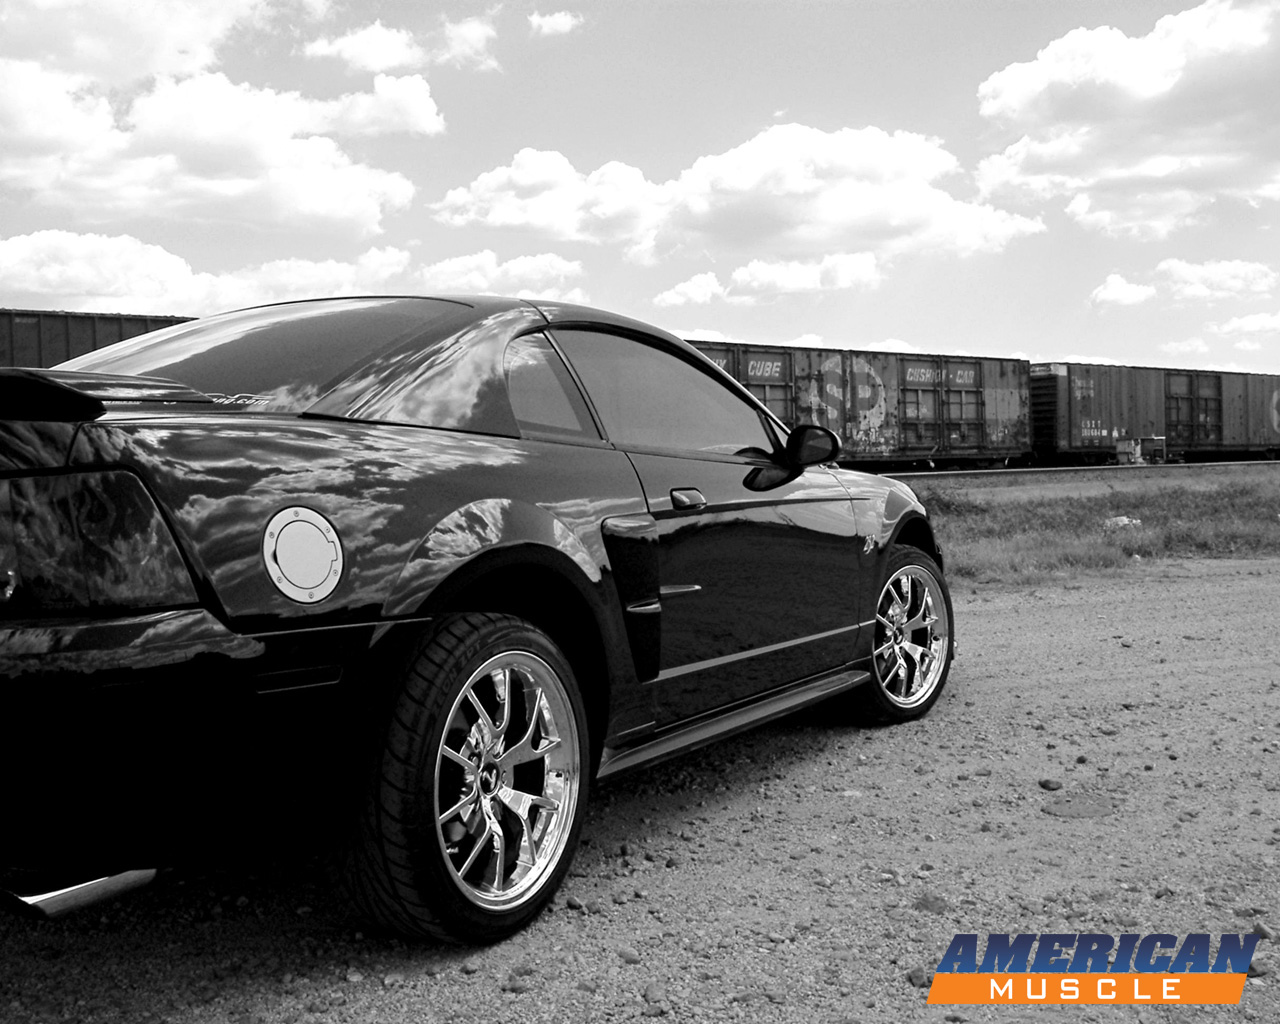 Black And White Mustang Wallpaper Black mustang wallpaper 1280x1024